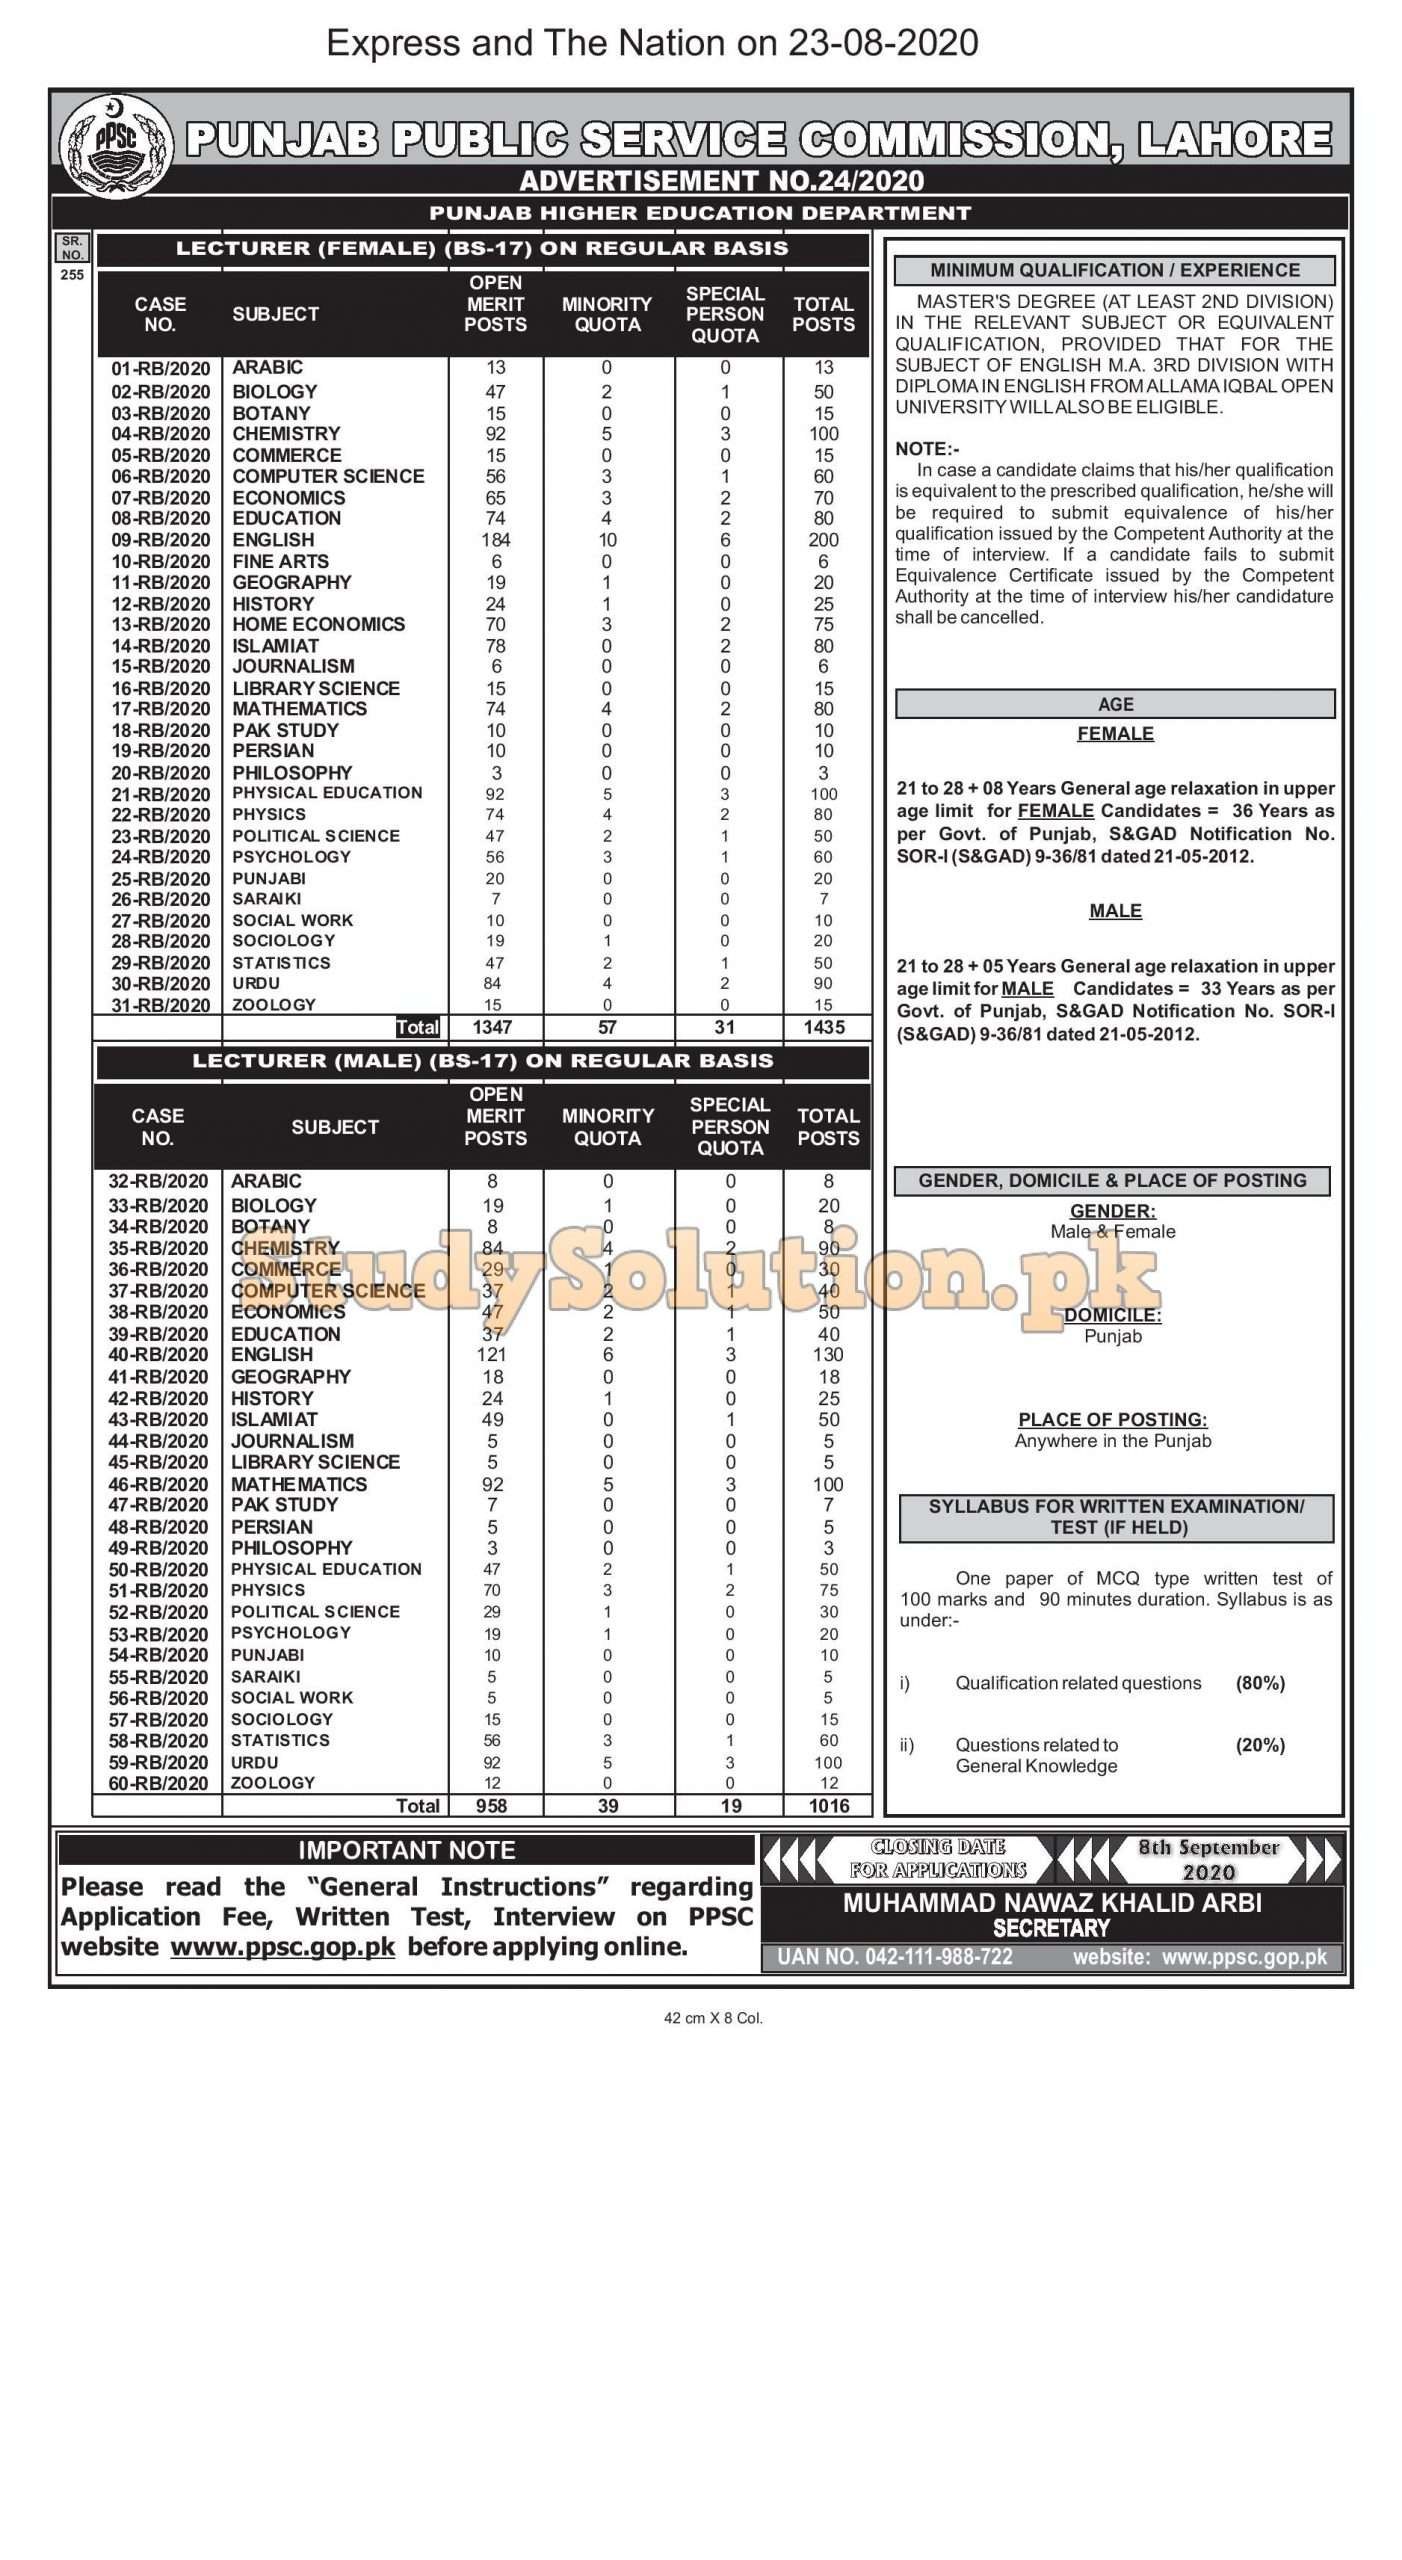 PPSC Teaching Jobs in Education Department Latest 2020